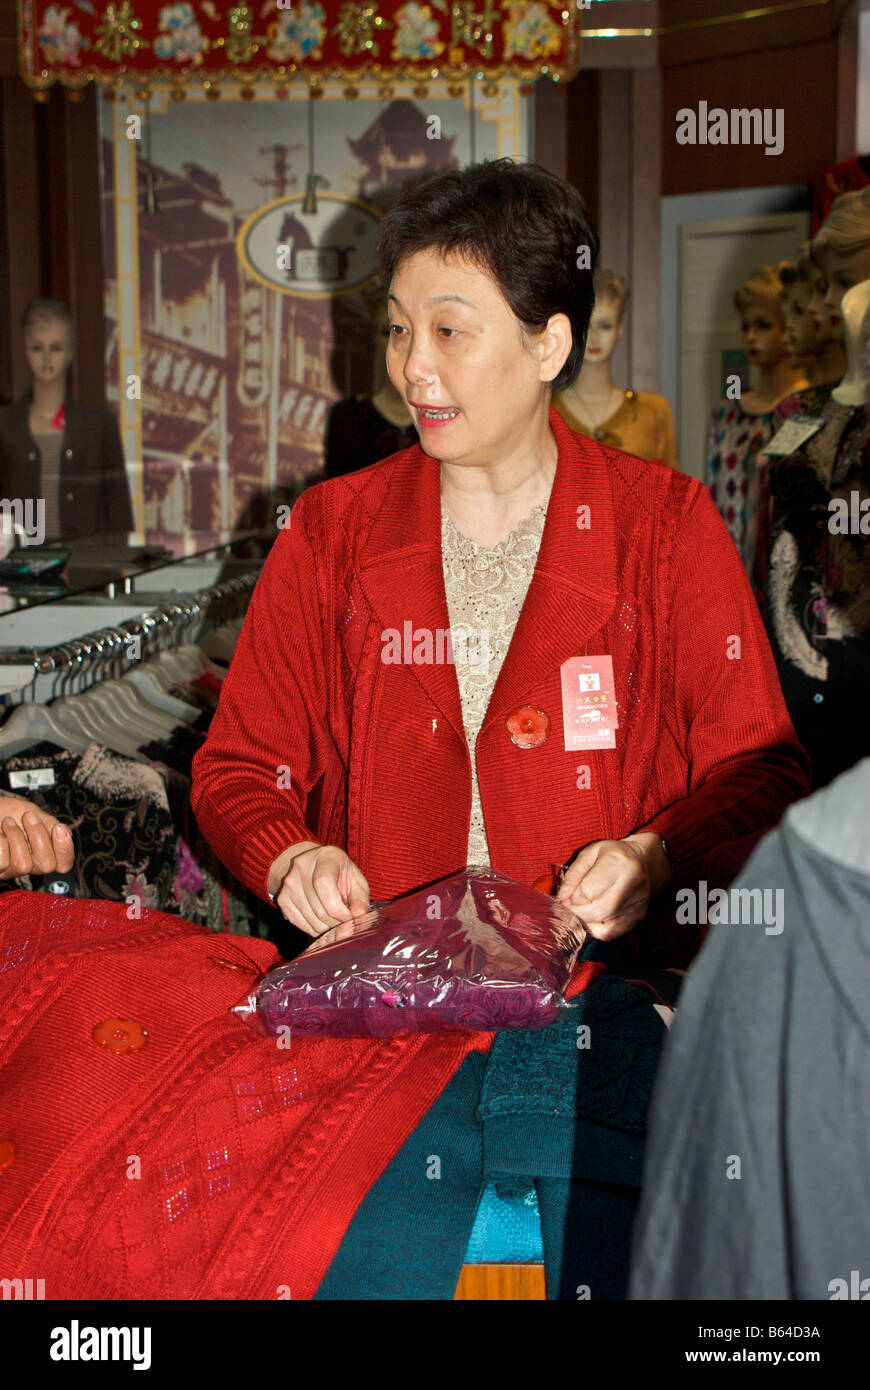 Woman proprietor packaging knitted wear for a customer in her small clothing shop stall in City God Temple Shanghai - Stock Image